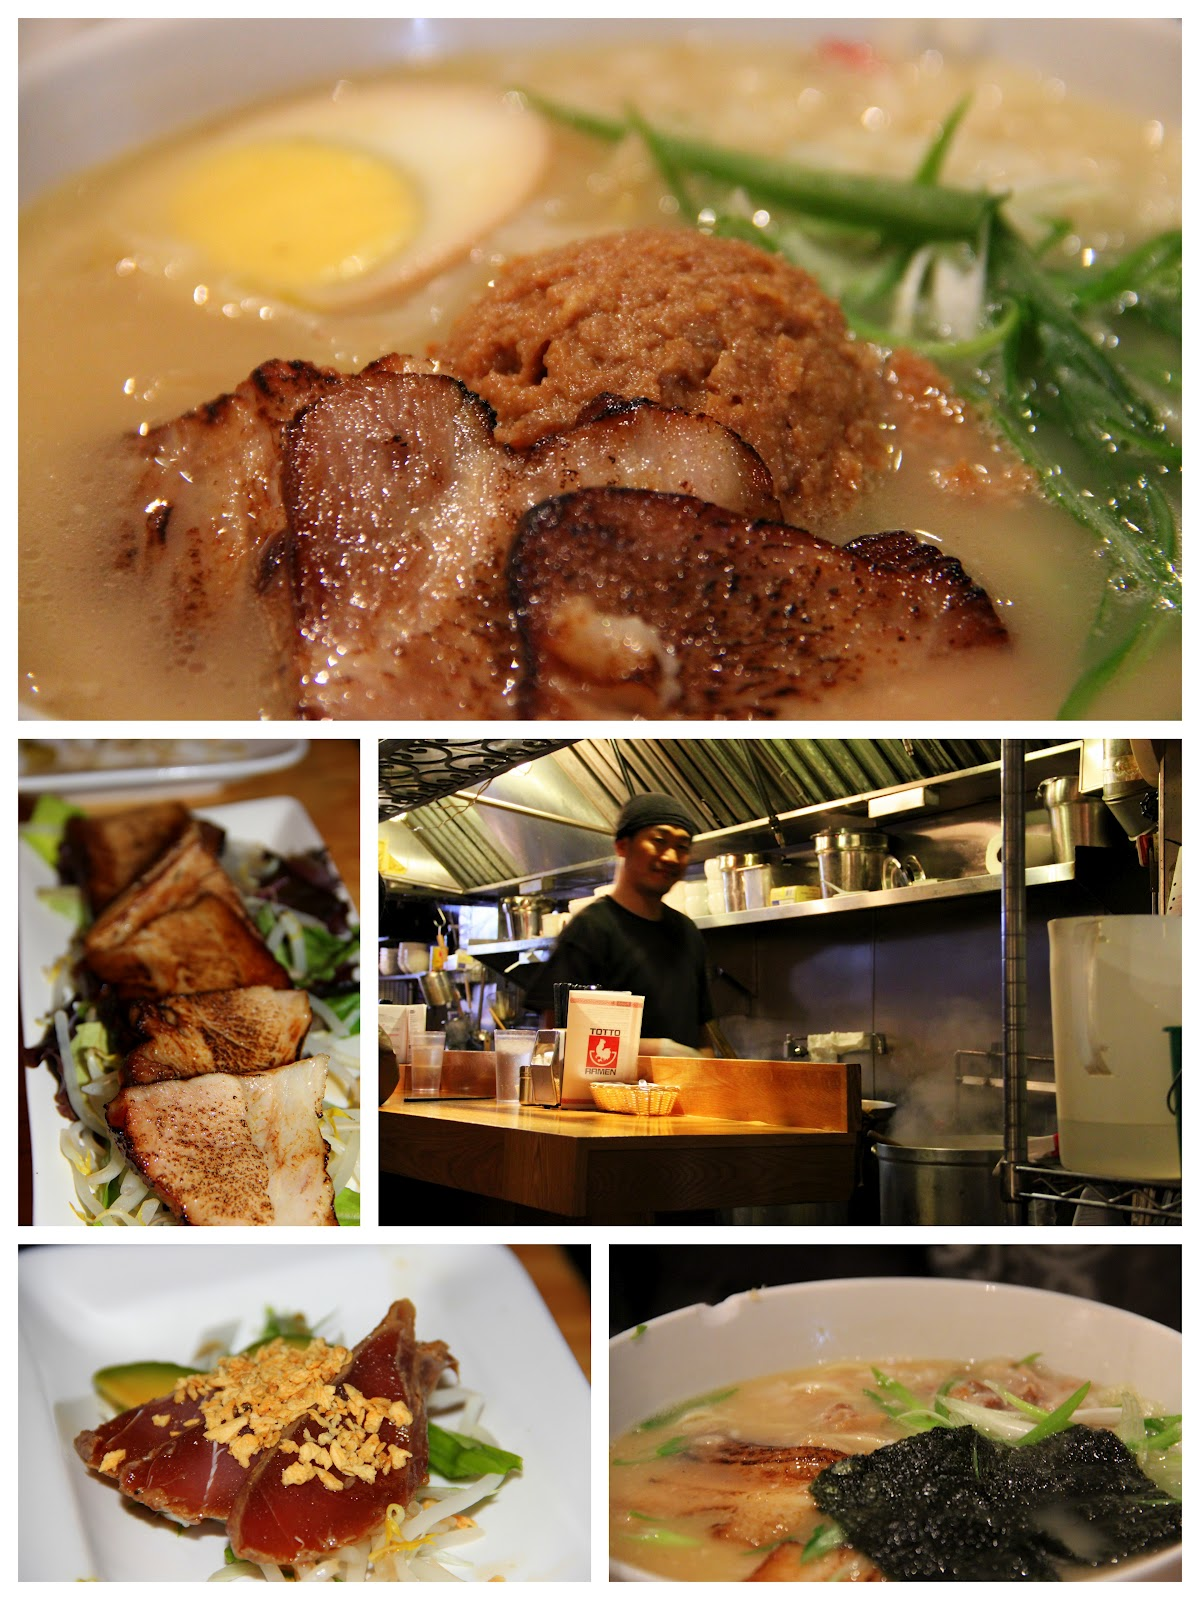 Thai Kitchen Noodles Le Chef Bleu's Blog I Love My Ramen Japanese Noodles In Hell's